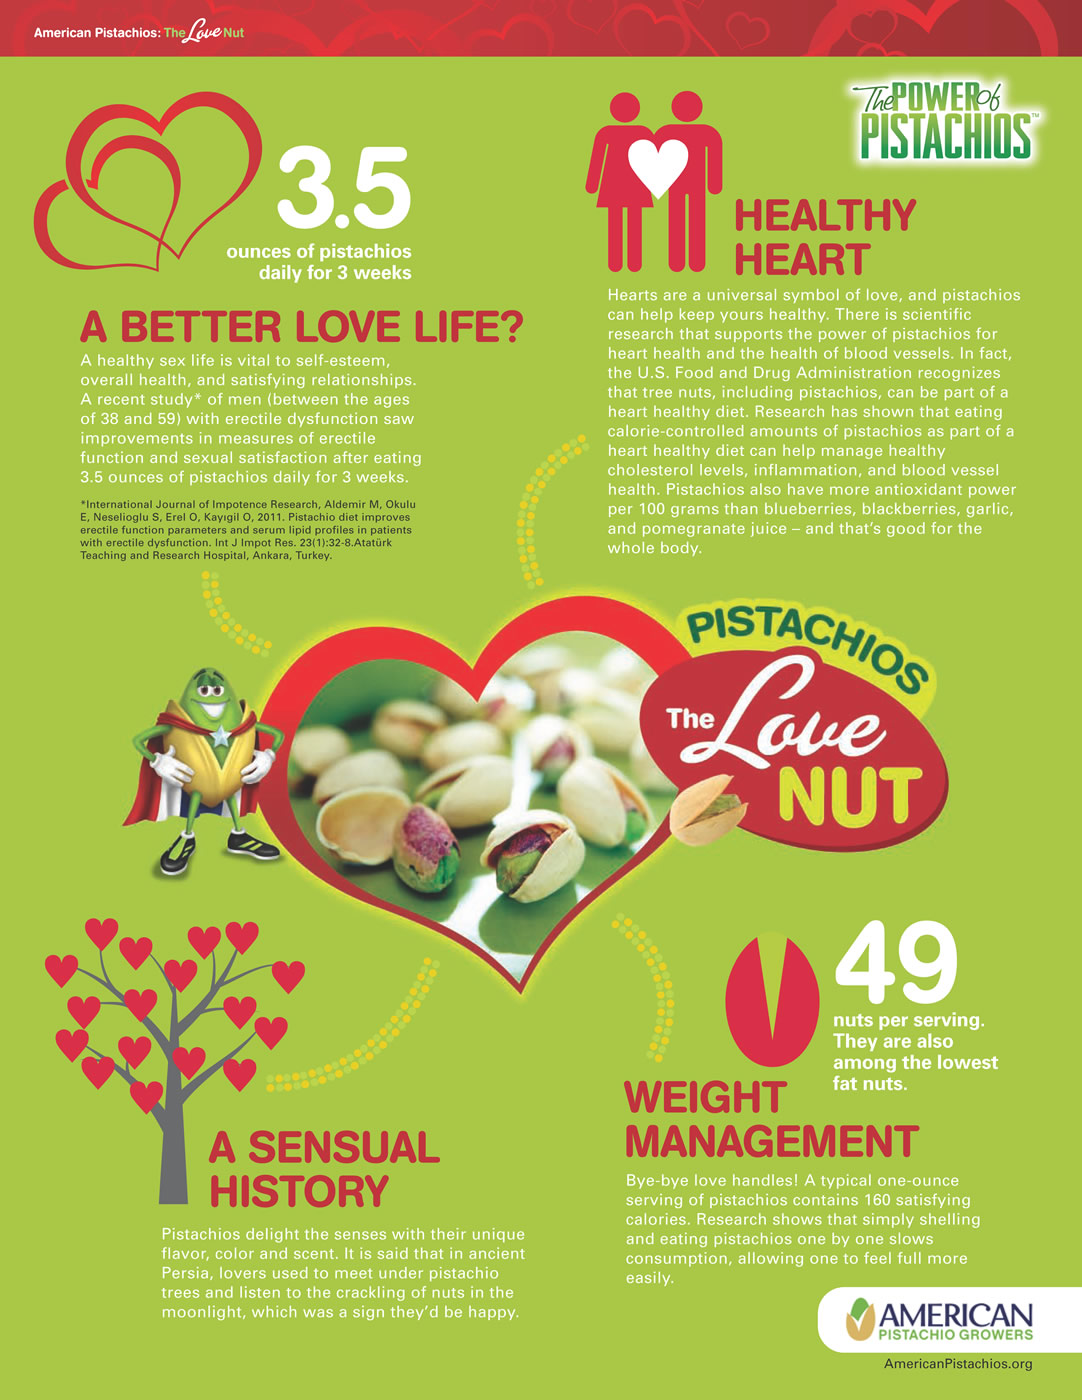 The Love Nut Infographic